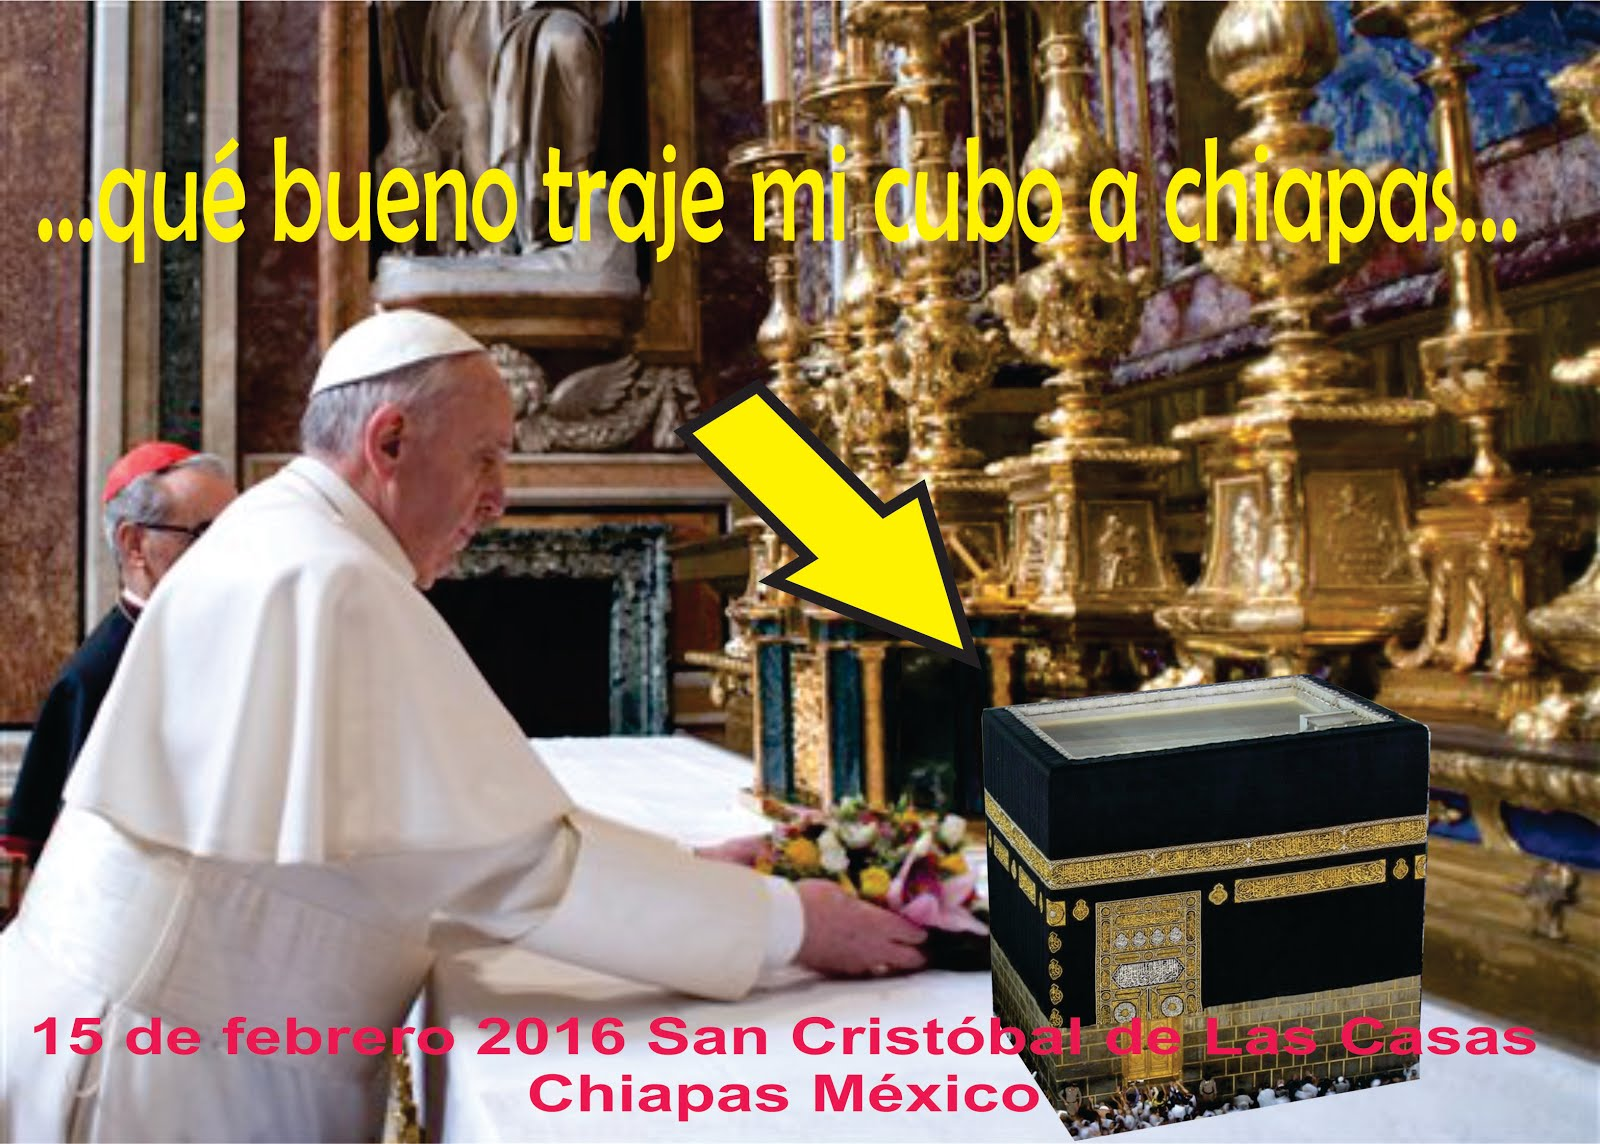 El Papa Francisco en San Cristóbal Chiapas